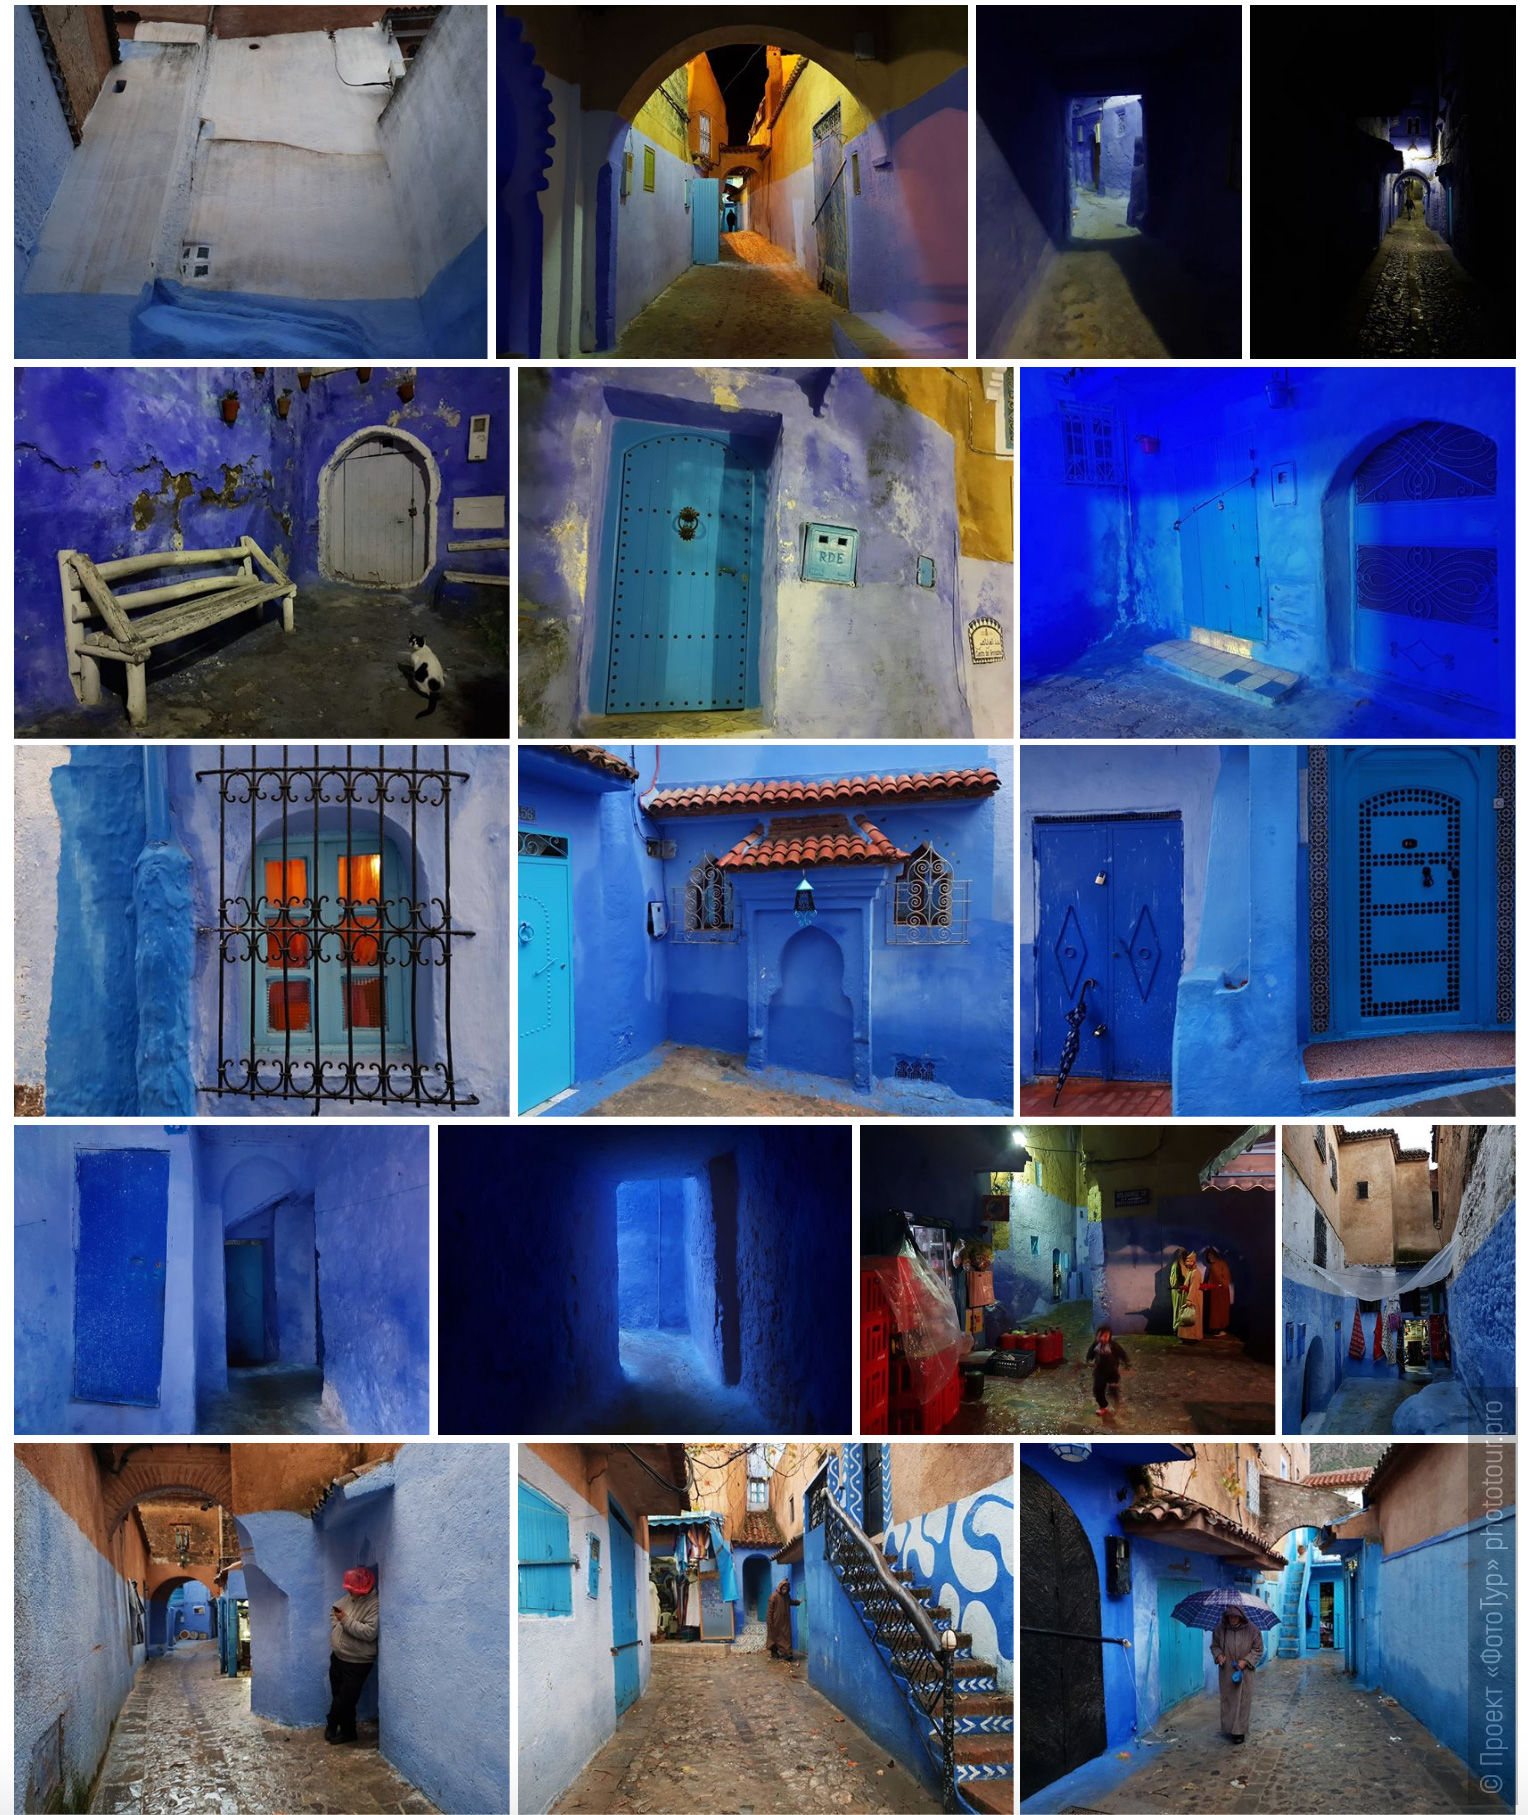 The blue city of Morocco is Chefchaouen. Adventure photo tour: medina, cascades, sands and ports of Morocco, April 4 - 17, 2020.